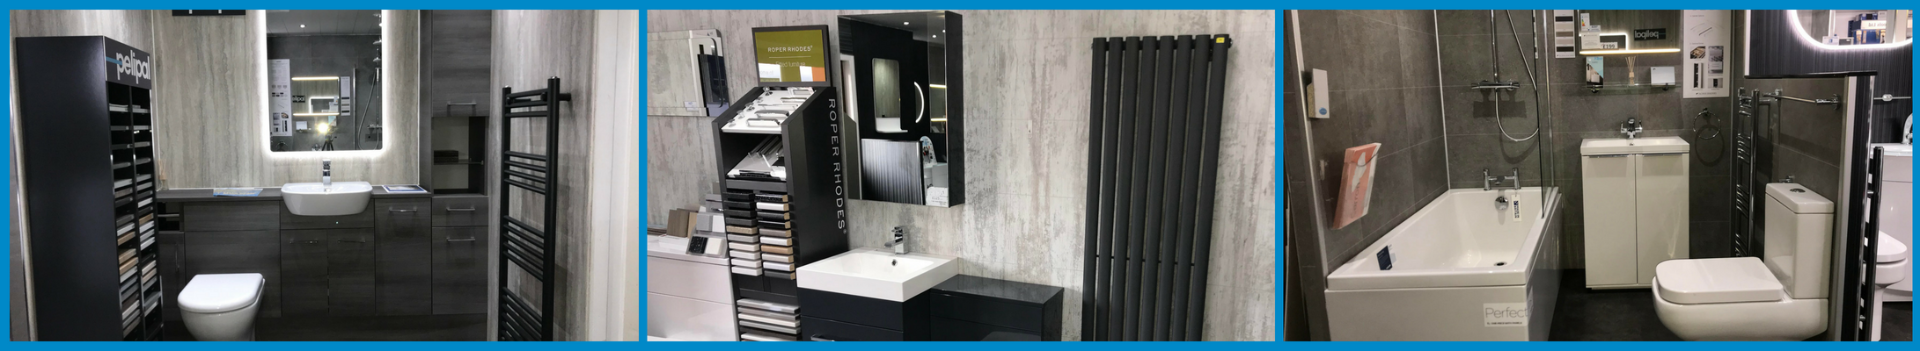 Plumbstore Bellshill bathroom display areas within there north lanarkshire bathroom showroom